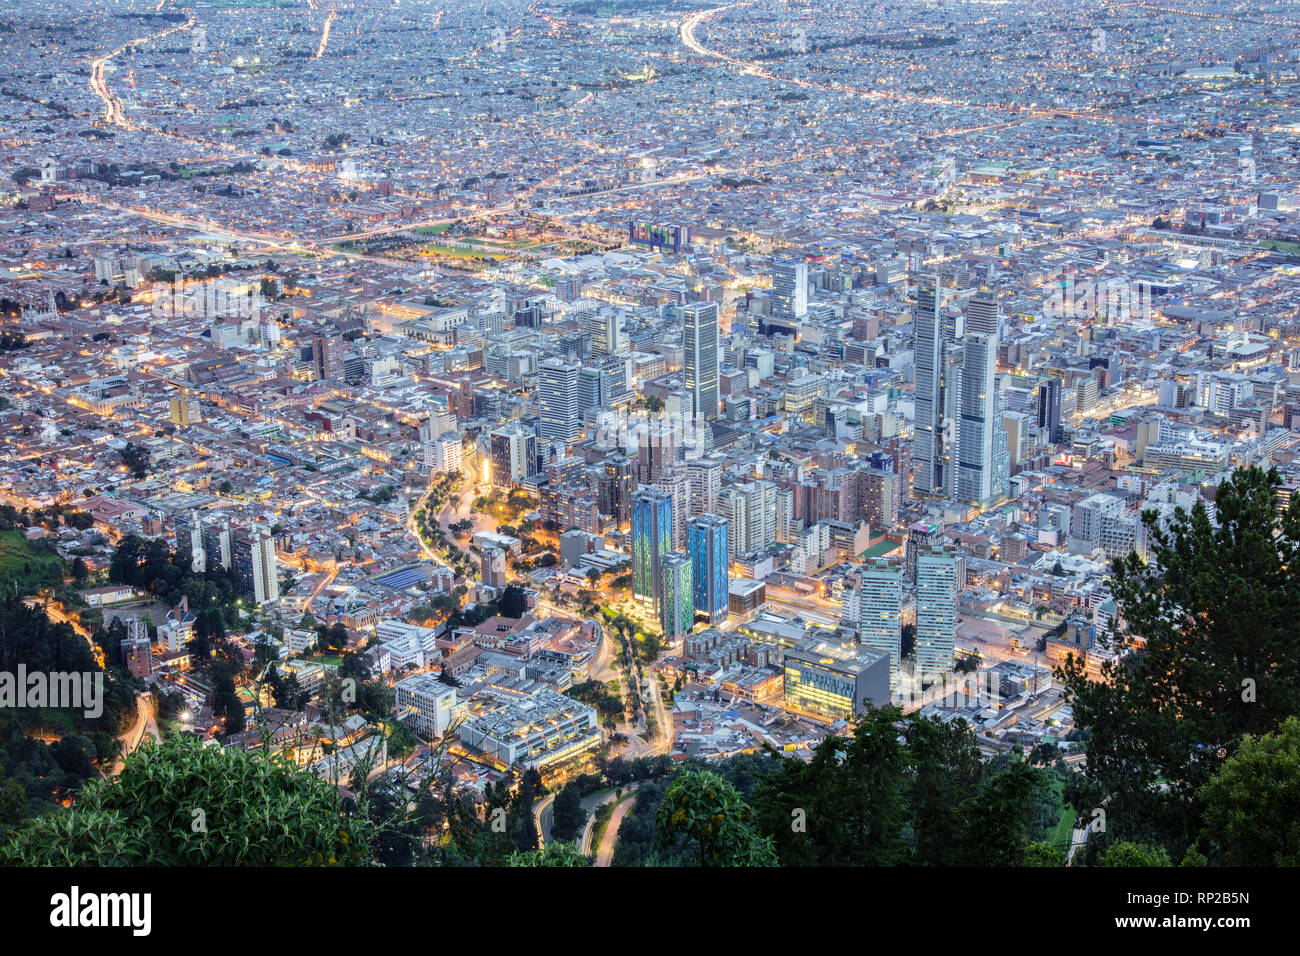 Colombia, Bogota, the Central Business District in the capital city at dusk - Stock Image